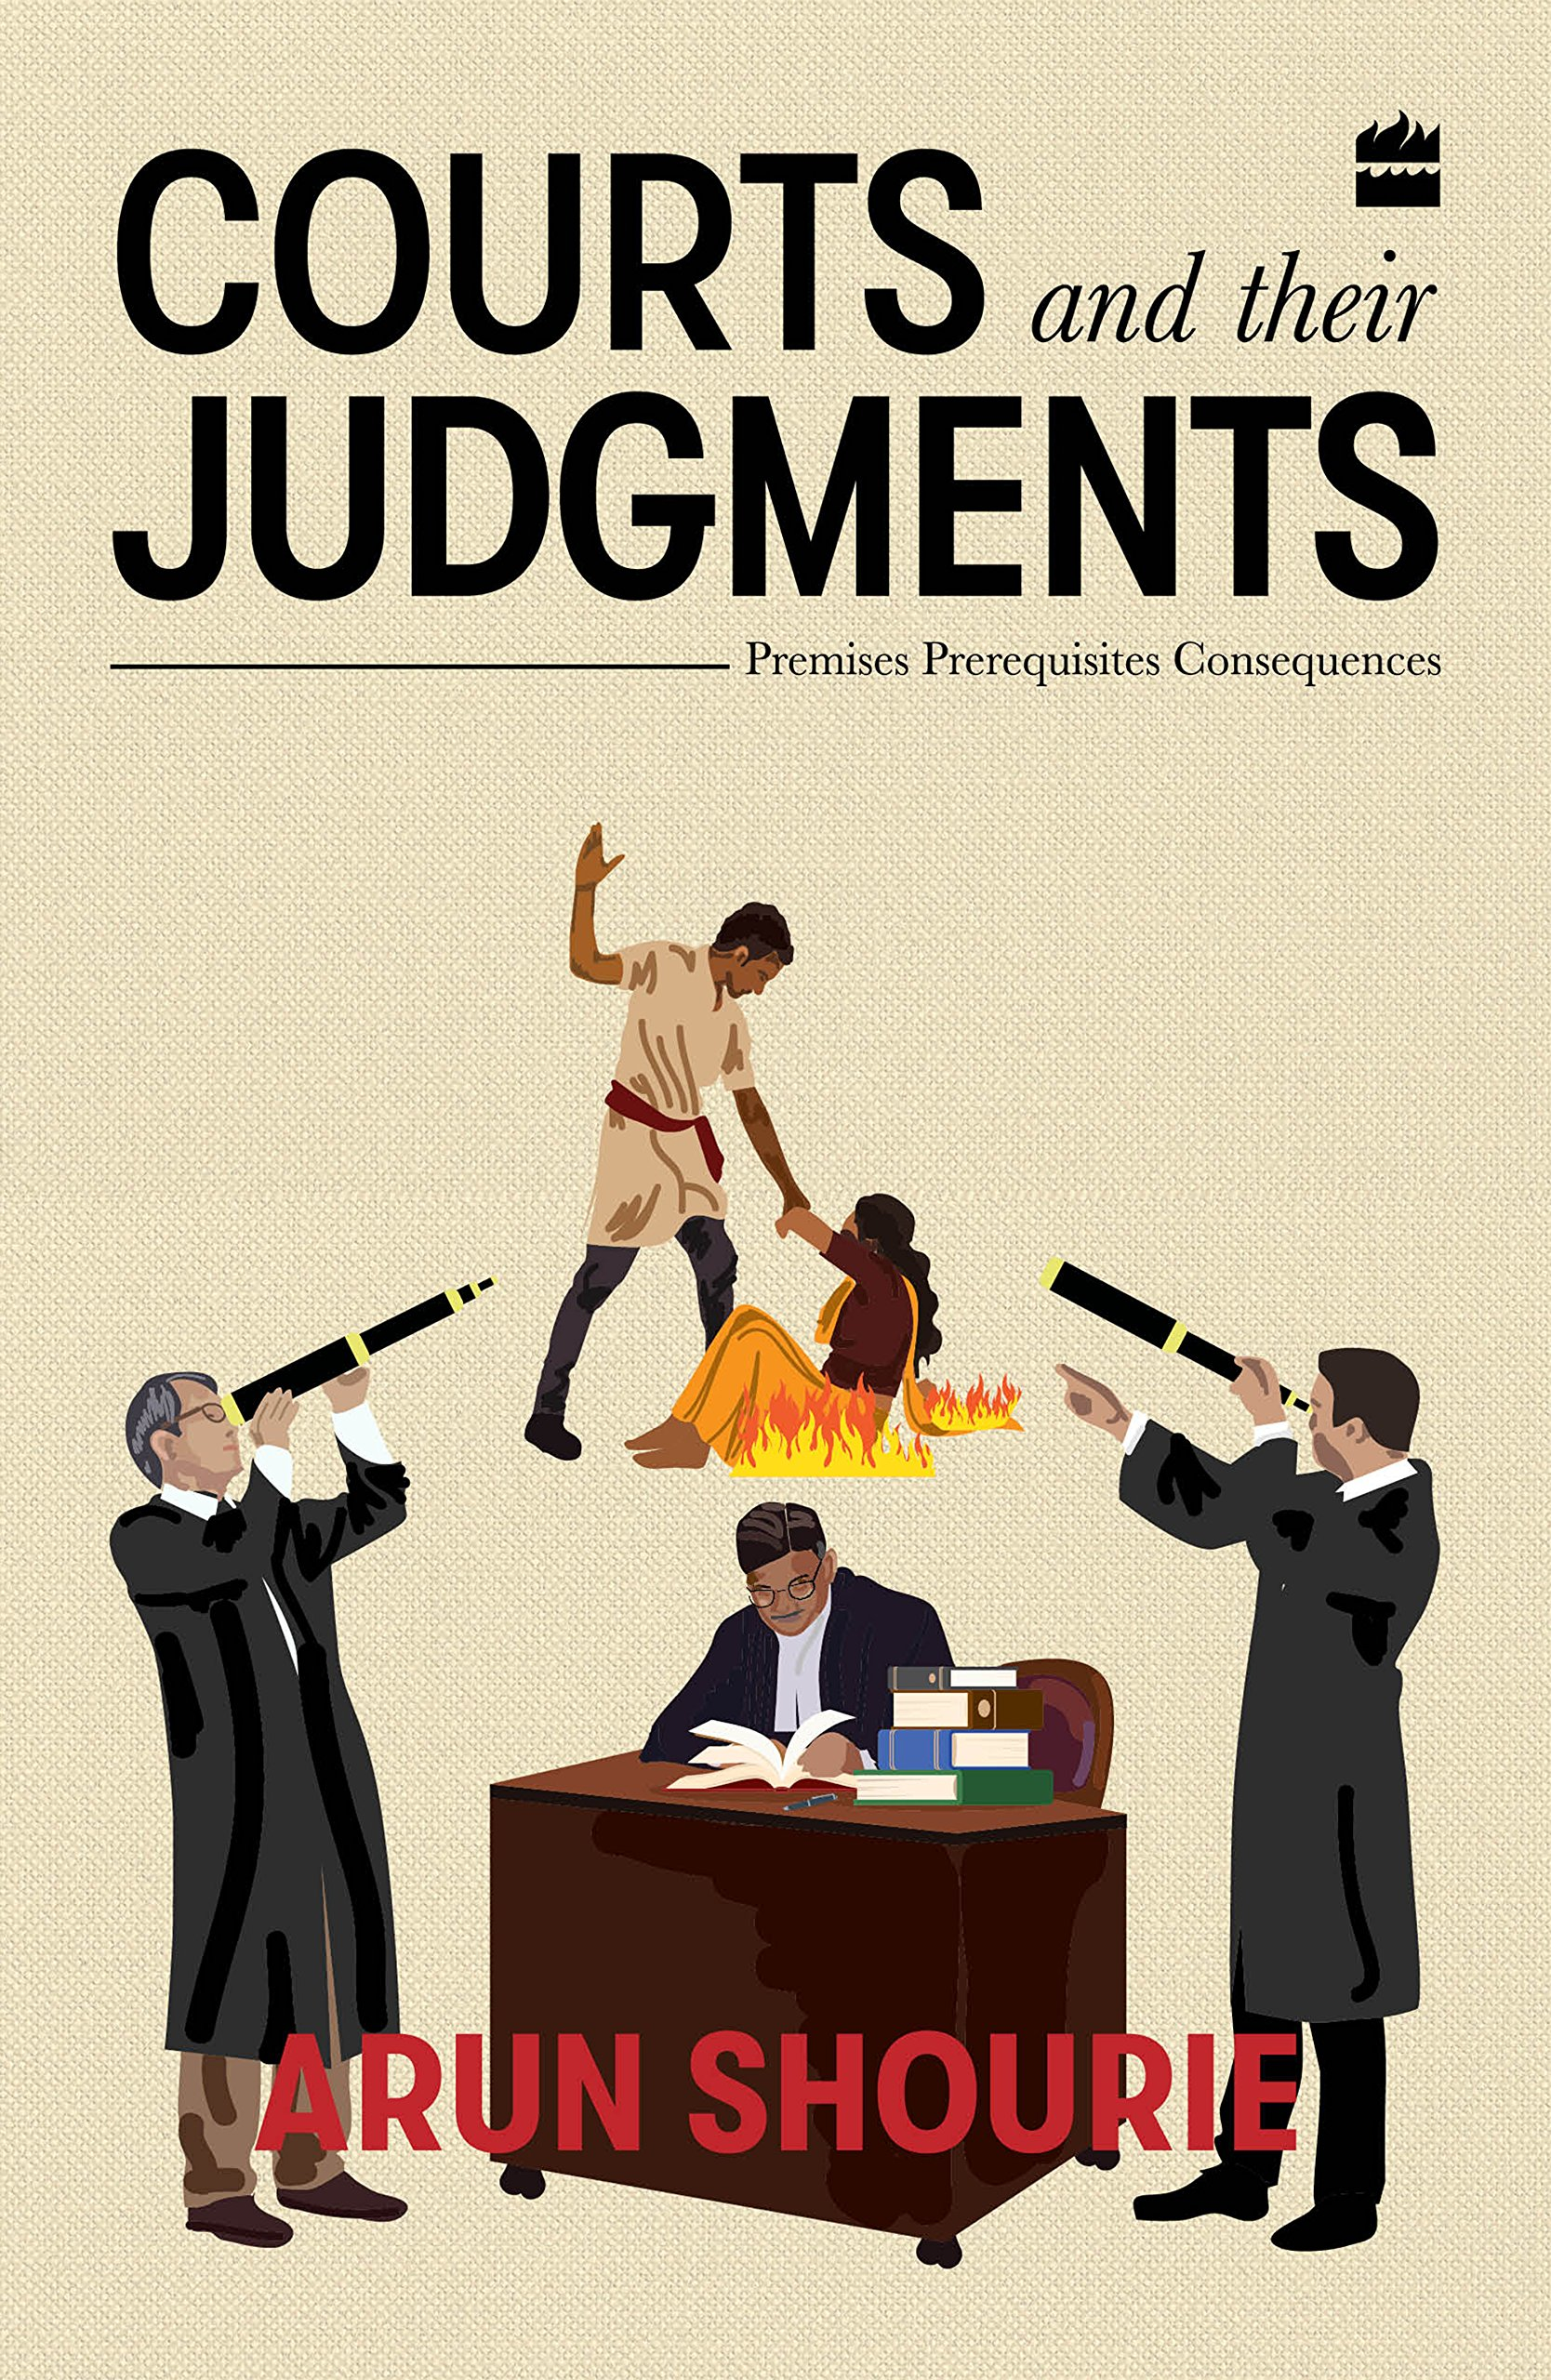 Courts and their judgements: Premises, perequisites, consequences